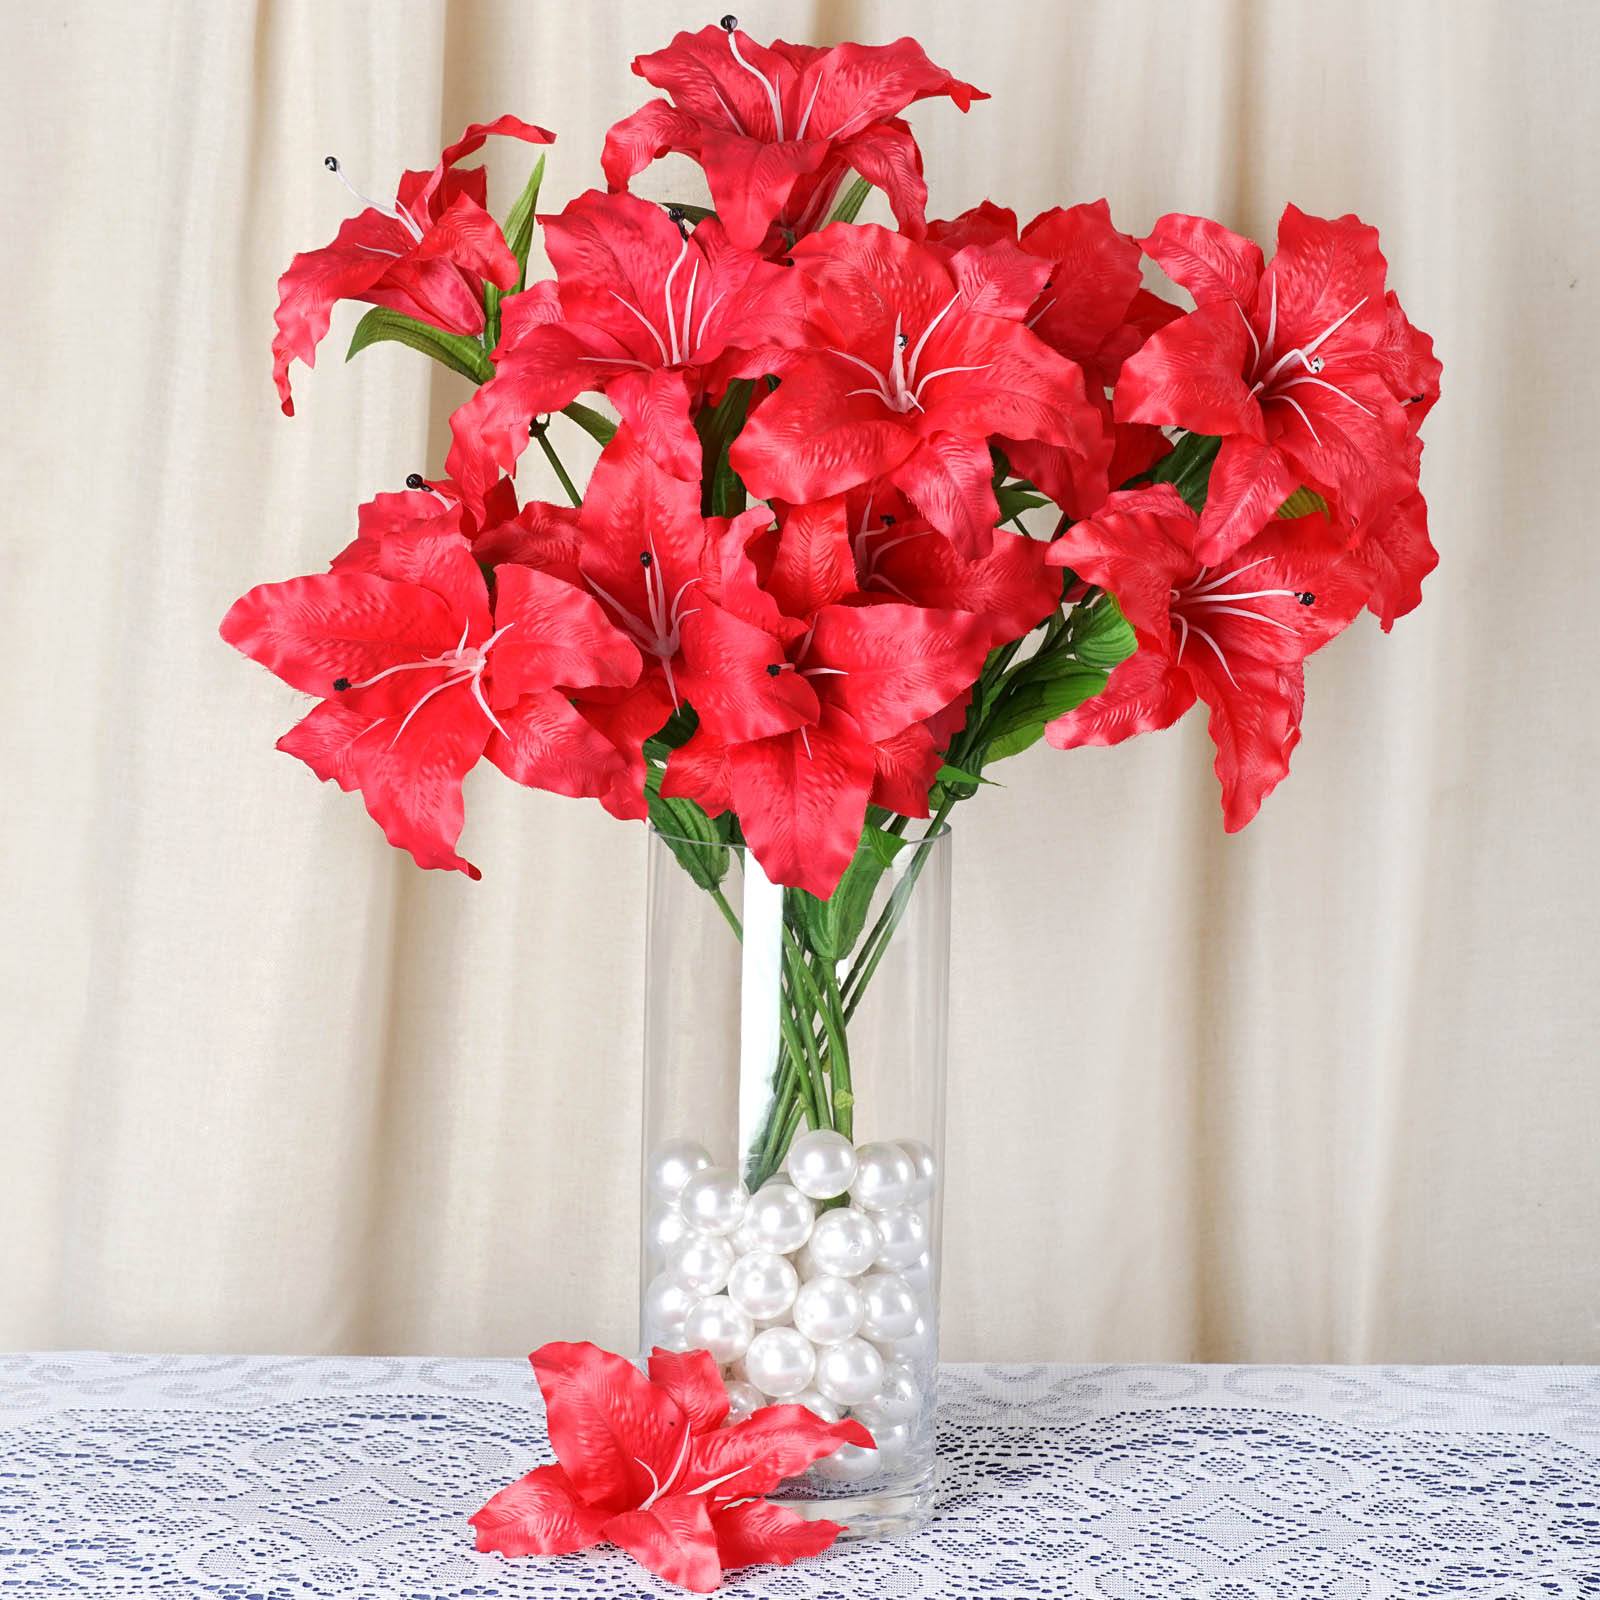 54 Pcs Extra Large Lilies Wedding Silk Artificial Lily Flowers For